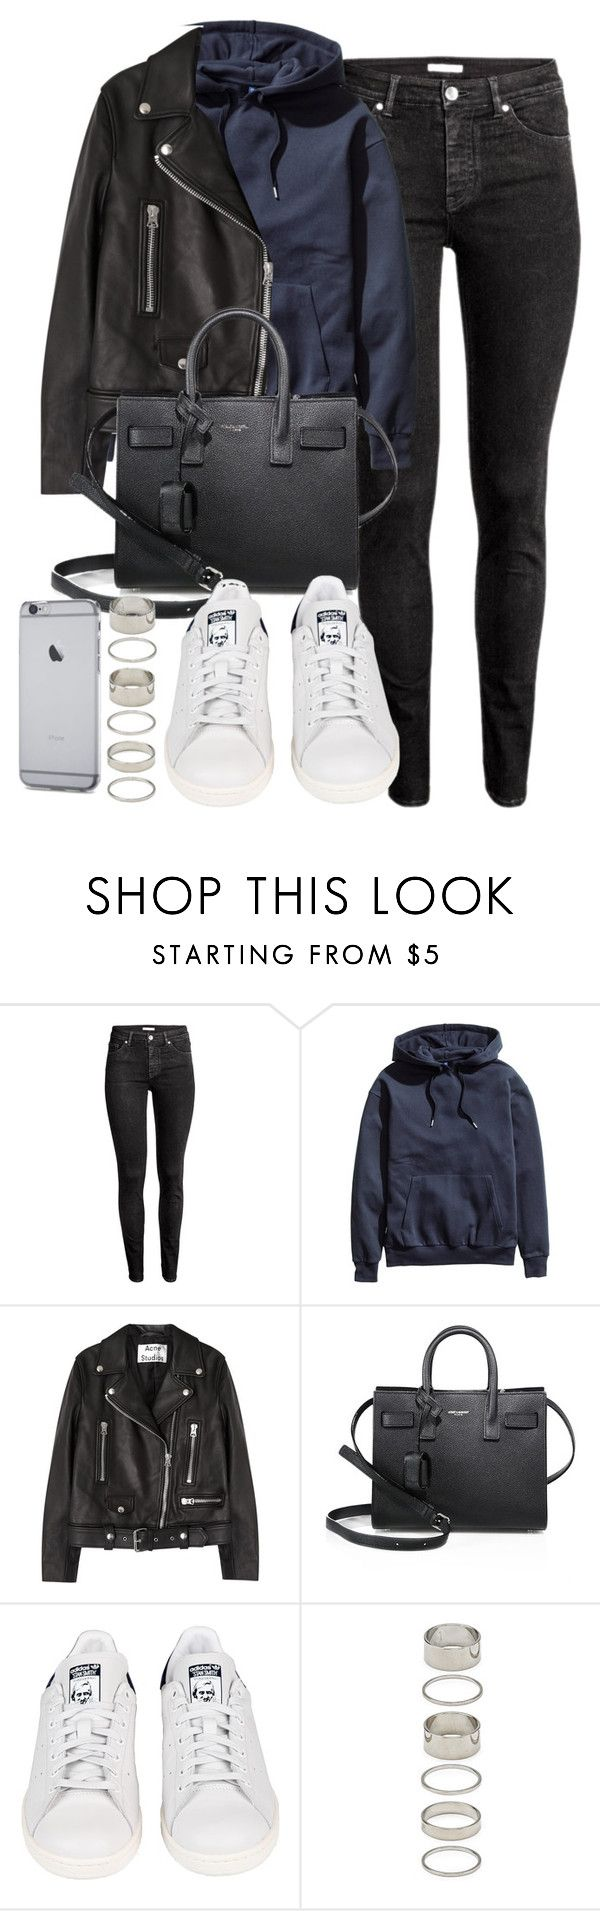 """""""Style #11554"""" by vany-alvarado ❤ liked on Polyvore featuring H&M, Acne Studios, Yves Saint Laurent, adidas and Forever 21"""